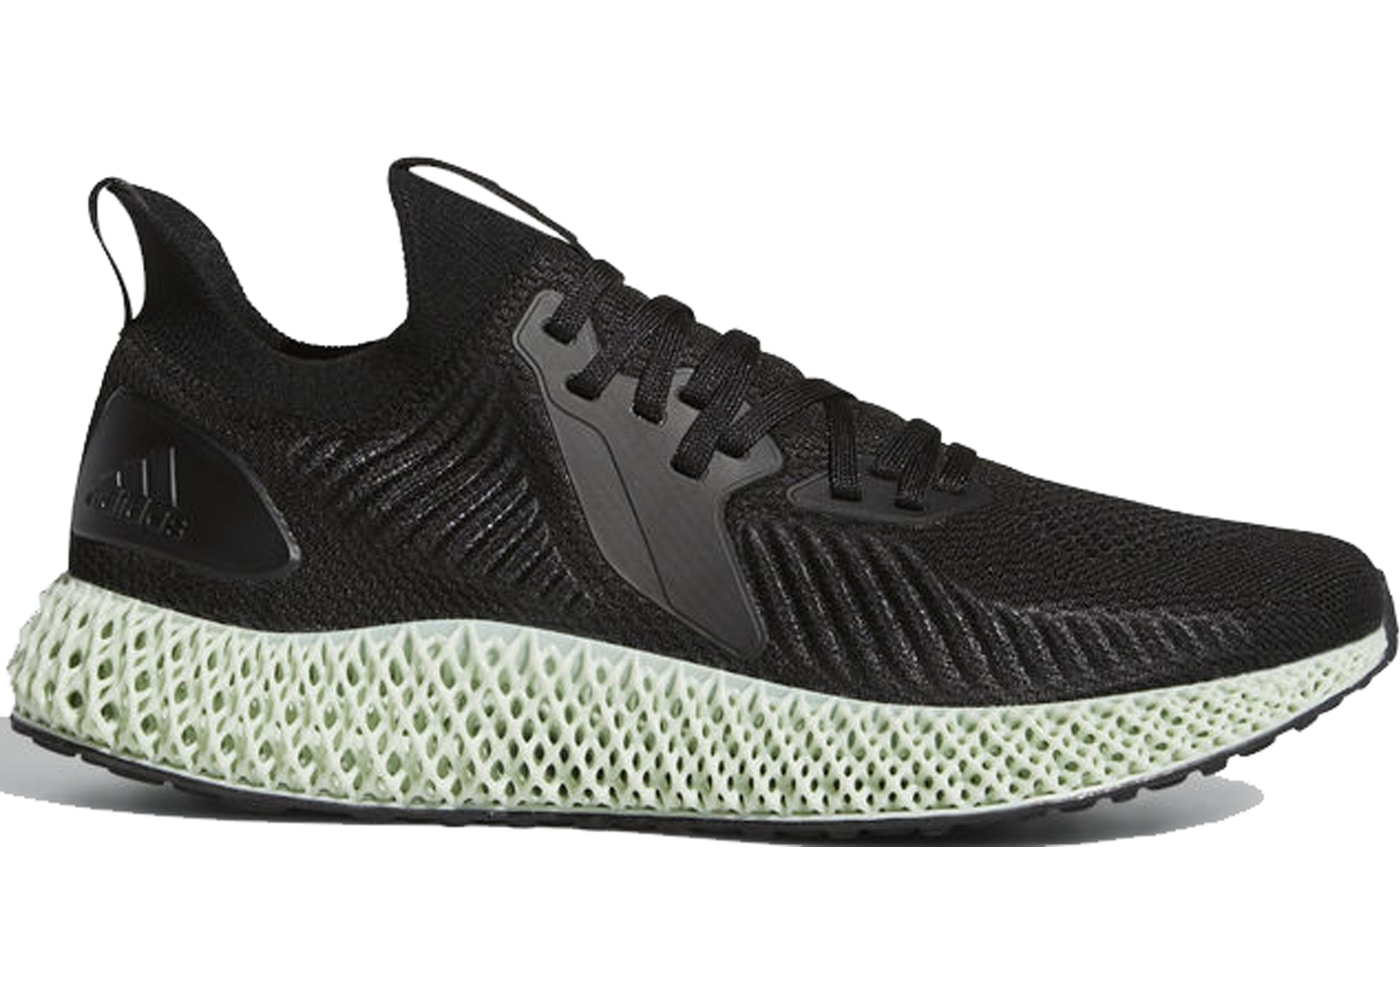 Adidas Alpha Edge 4D — Saver